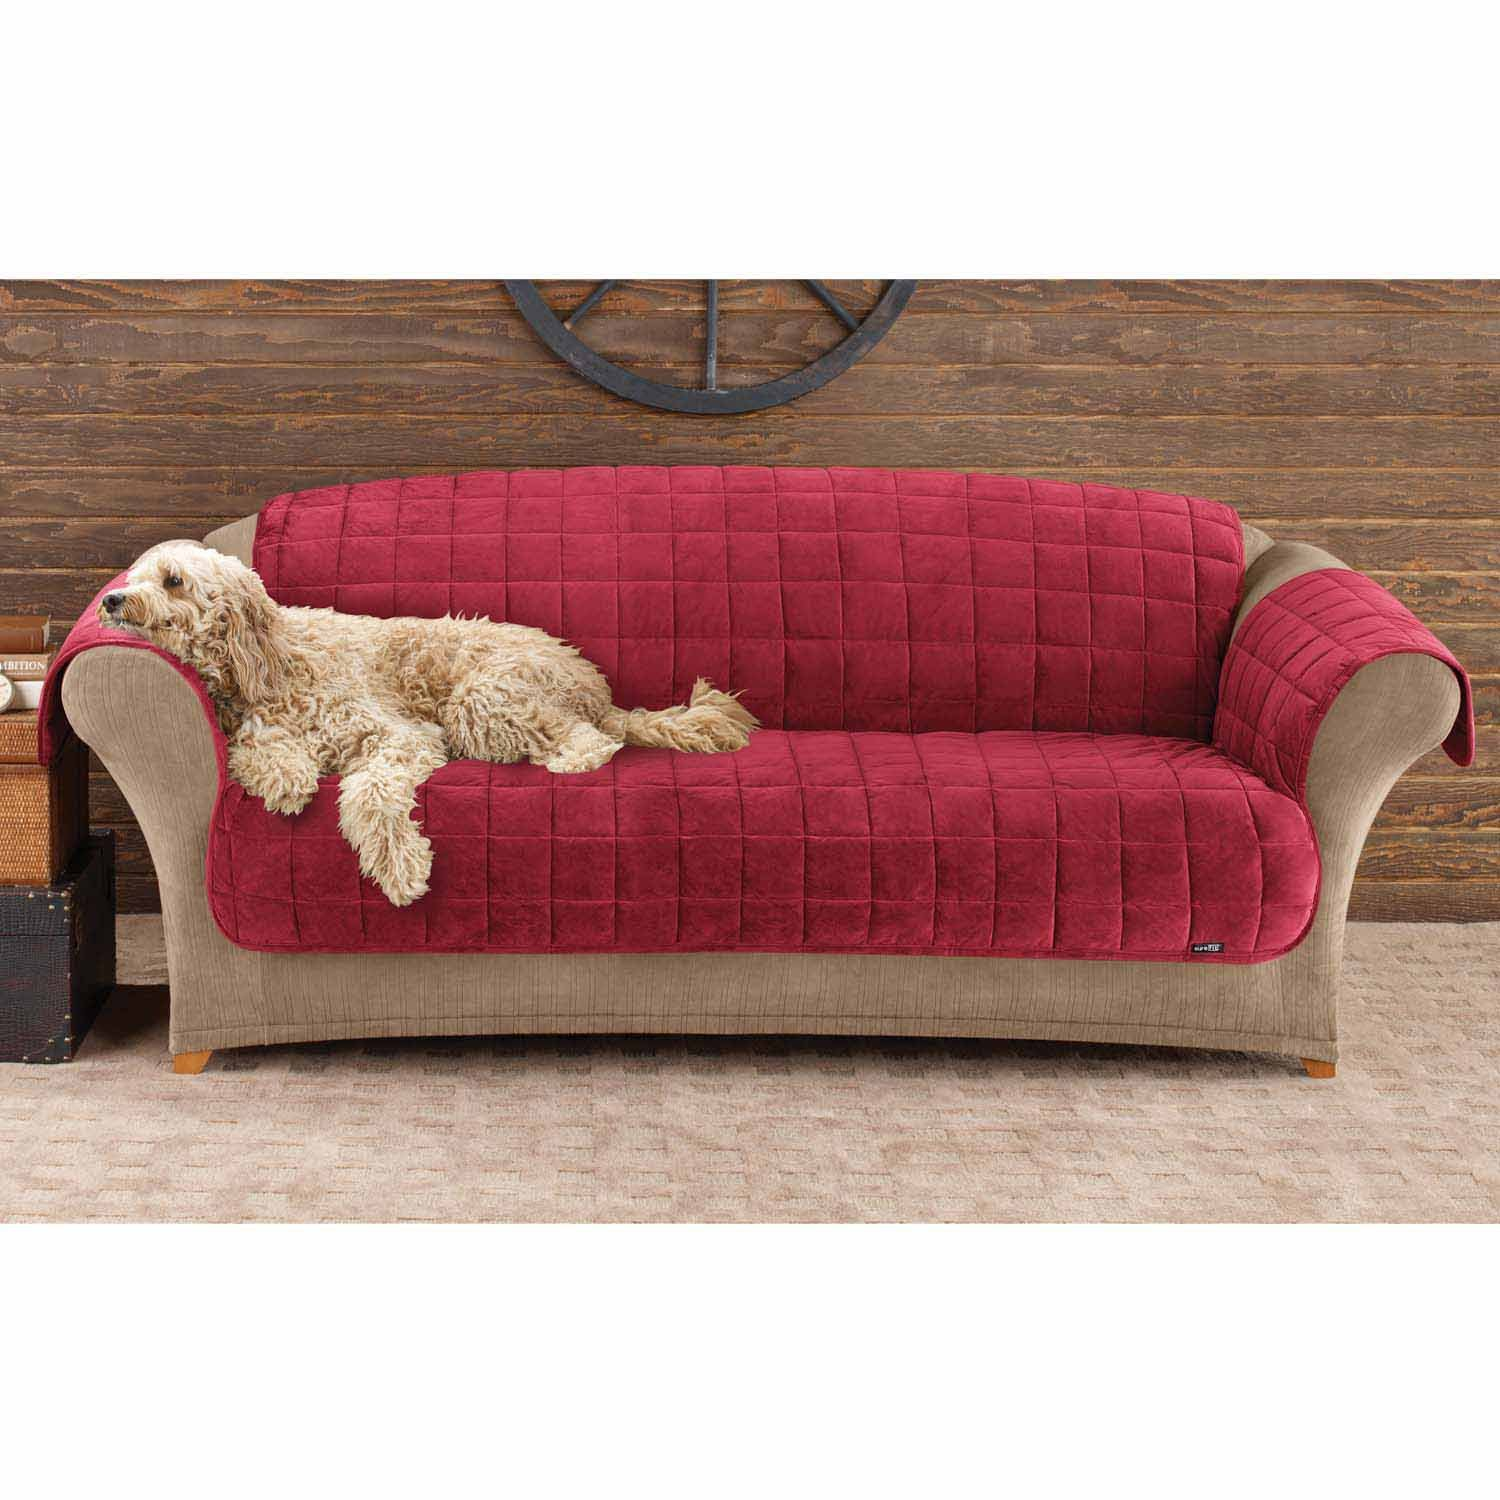 Amazon Sure Fit Deluxe Pet Cover Sofa Slipcover Burgundy